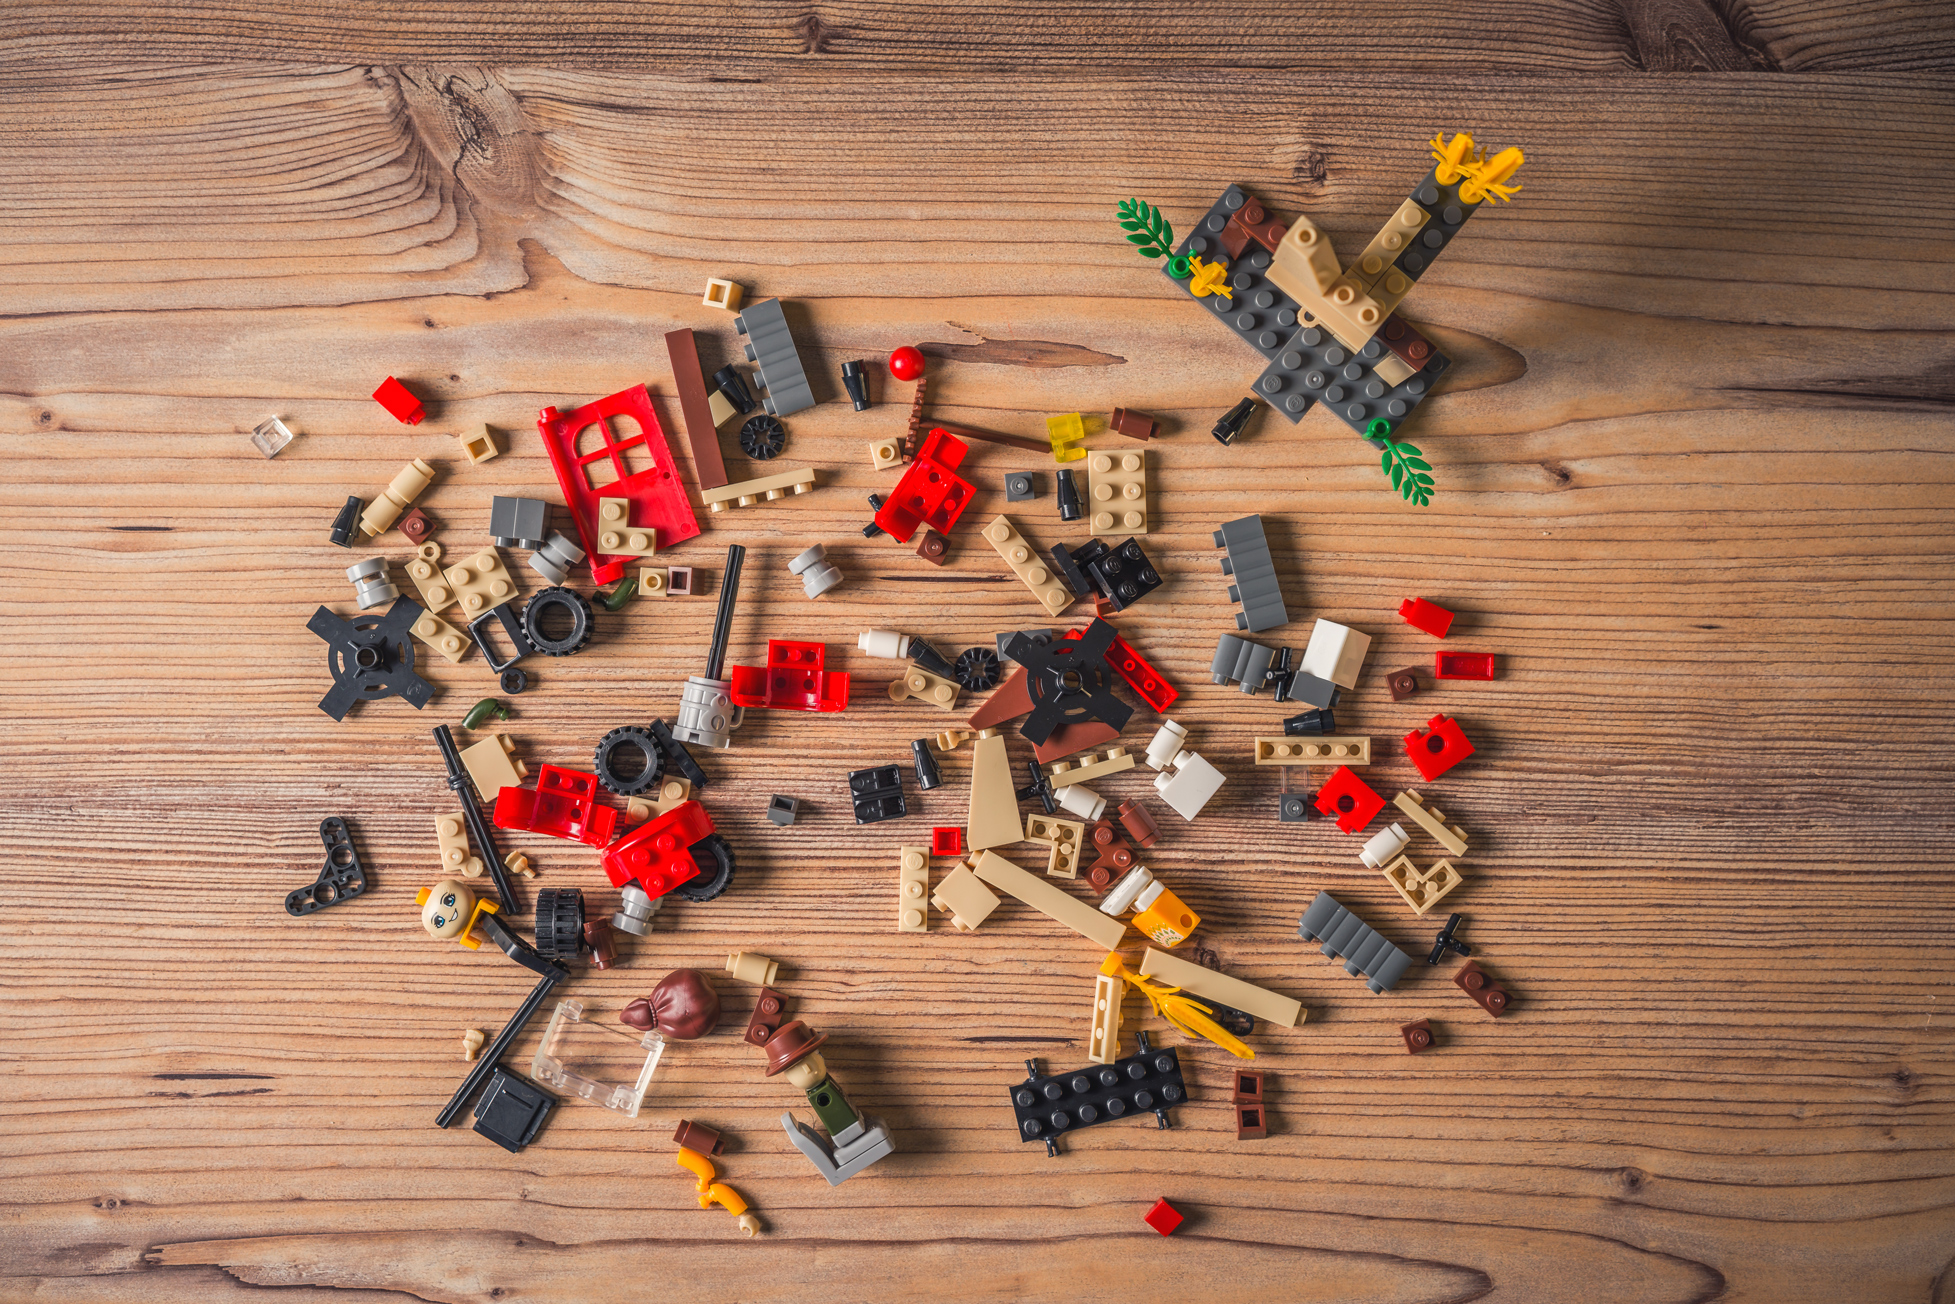 lego pieces scattered on wood floor